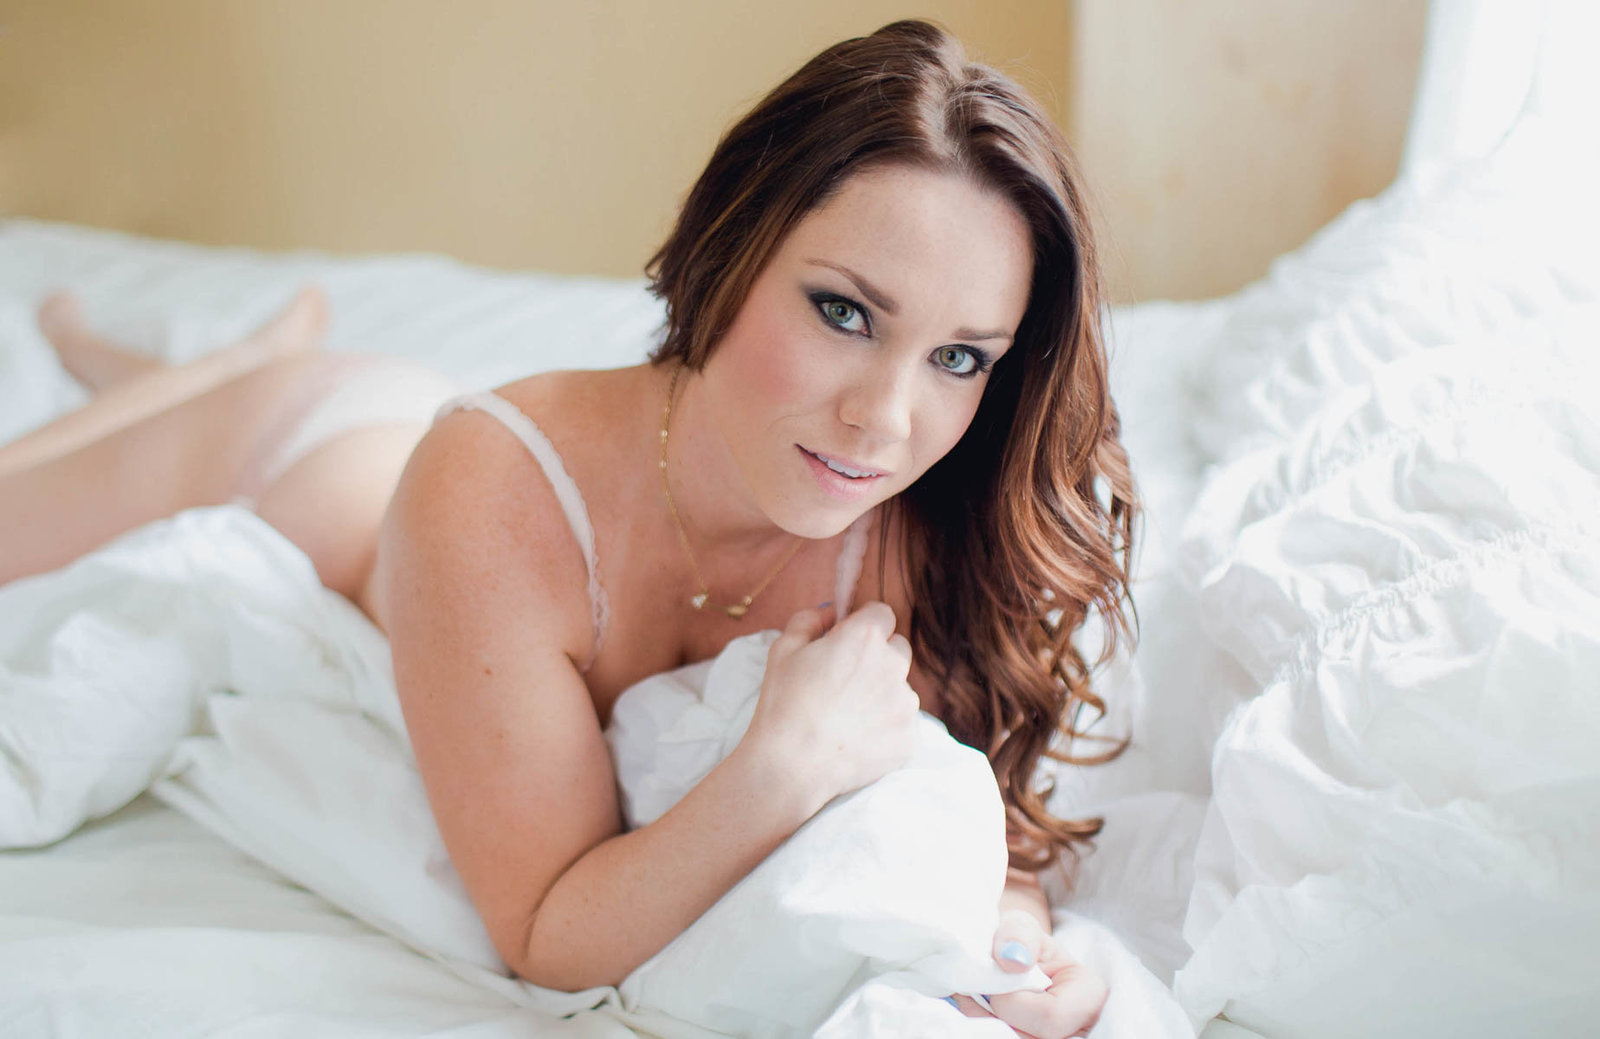 Ms L wears pink lingerie in bed, Boudoir Photography, Charleston, SC